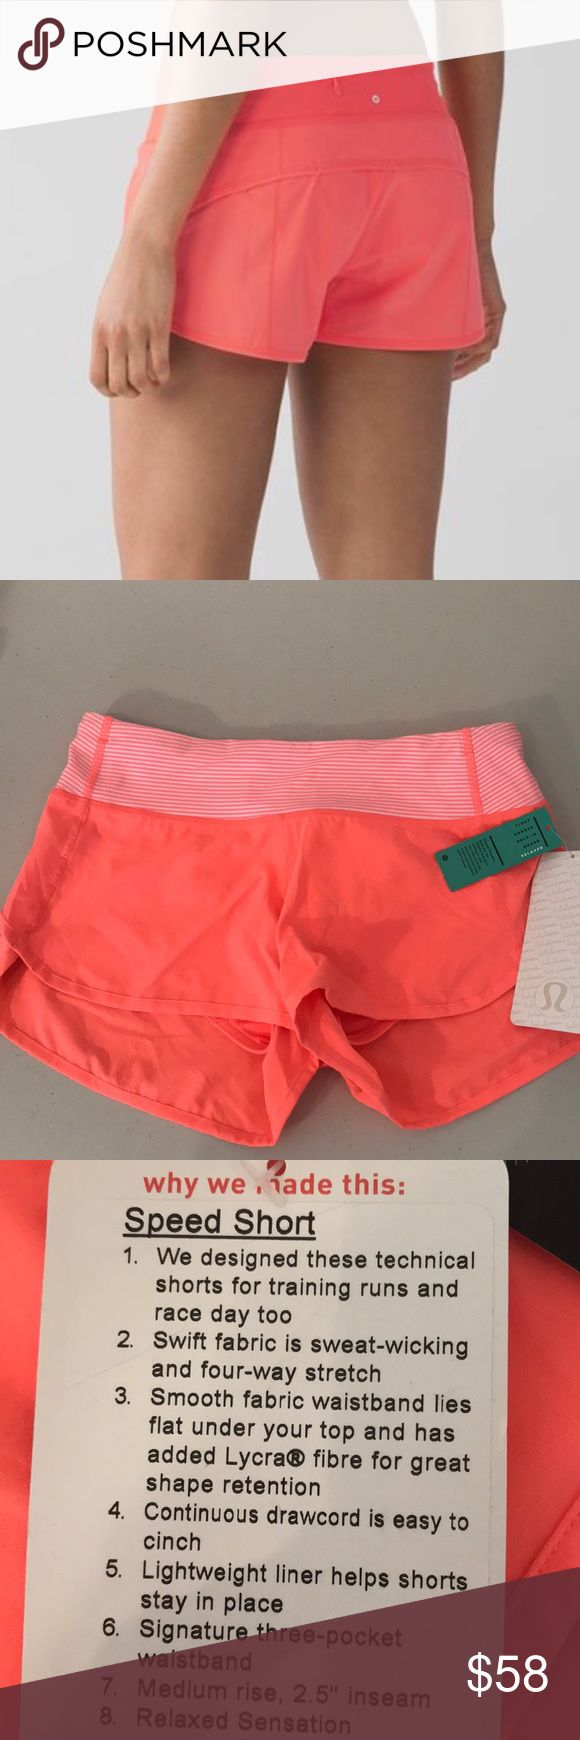 "NWT GRPF LULULEMON SPEED SHORT - - Size 4 Brand: Lululemon Athletica Speed Short 2.5 "" inseam           Condition: New with tag 